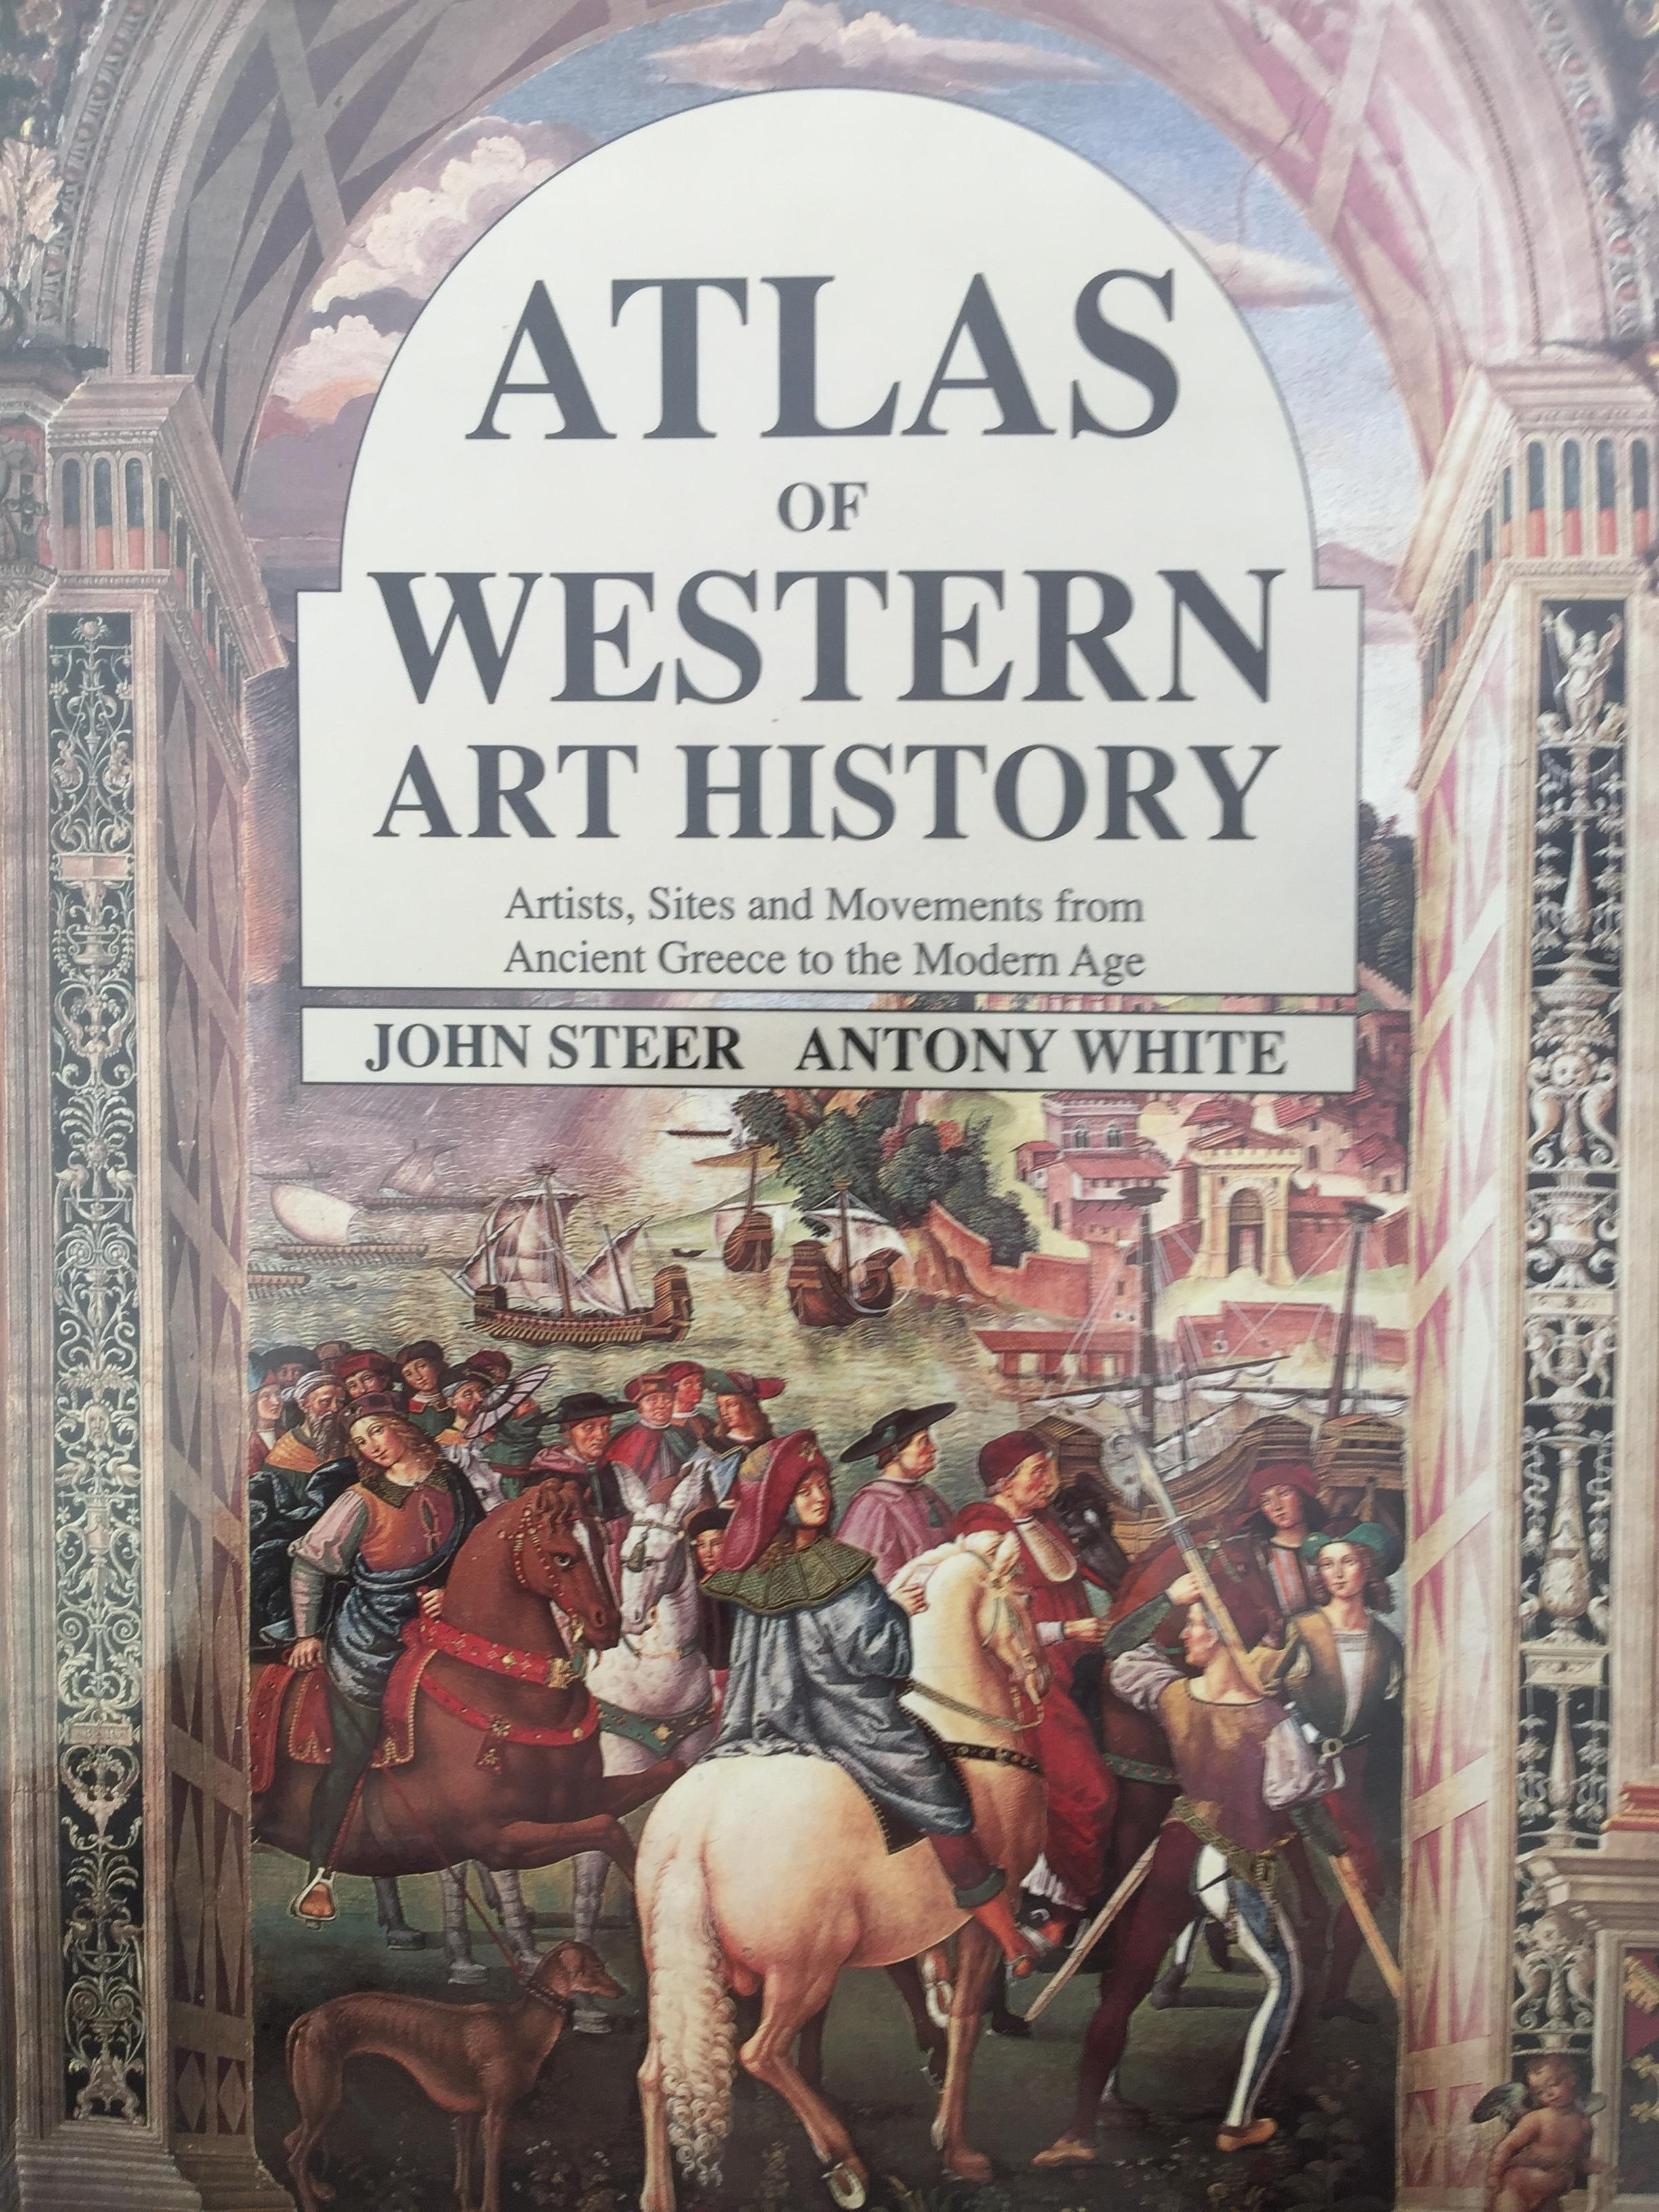 ATLAS of WESTERN ART HISTORY. Artists, Sites and Movement from Ancient Greece to the Modern Age. ผู้เขียน John Steer Antony White.